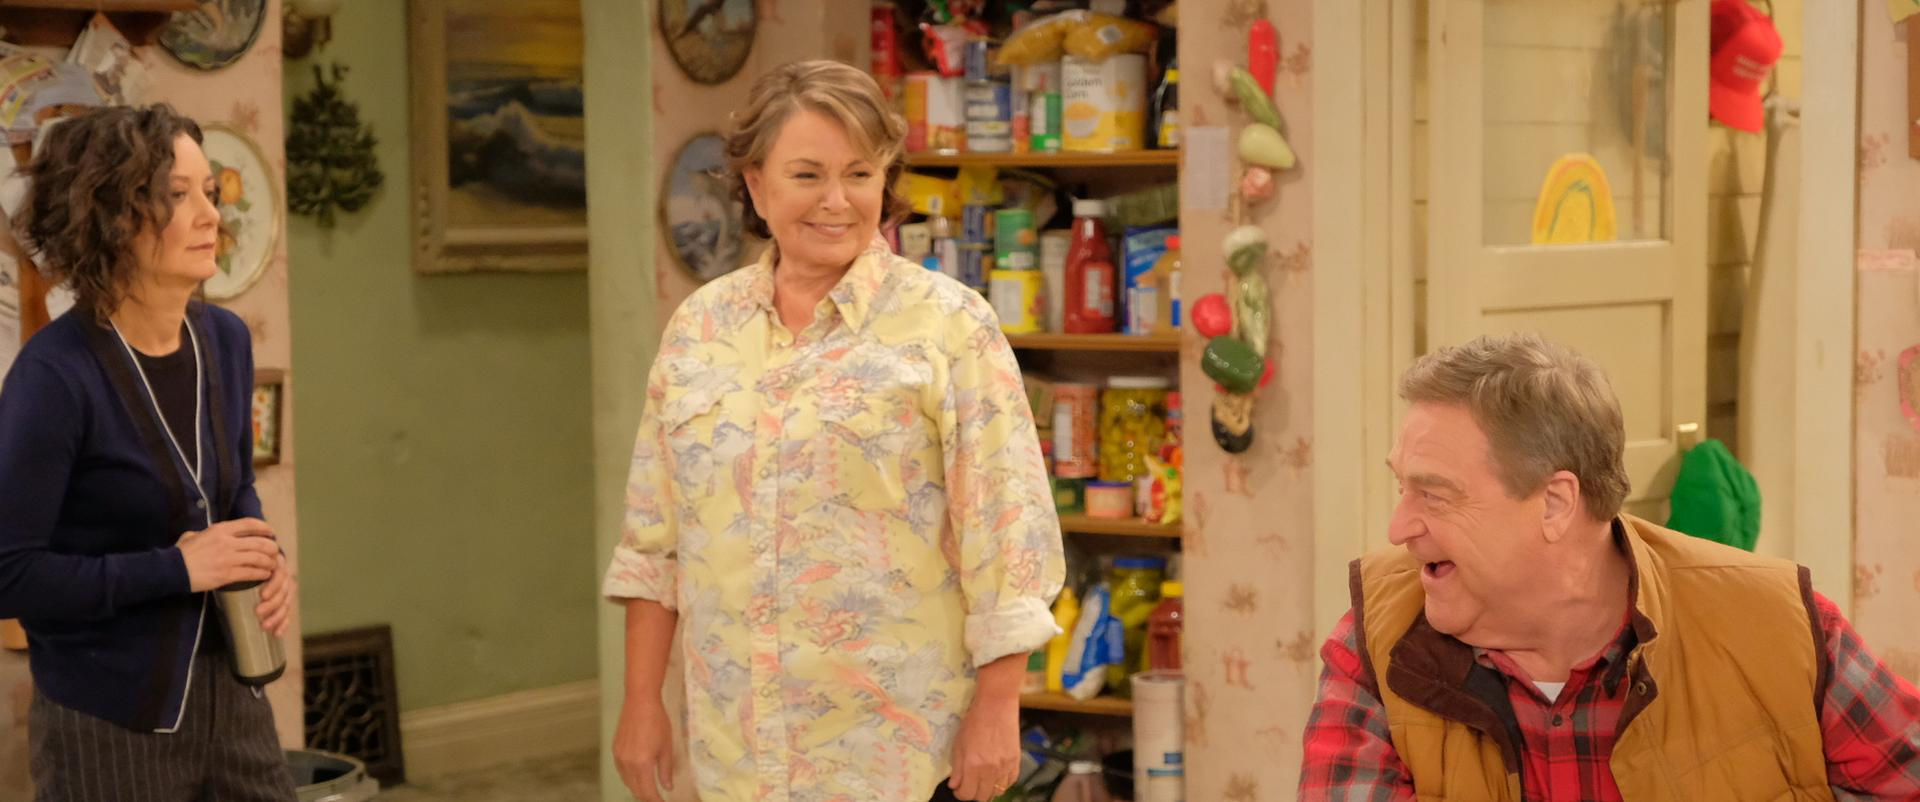 "From left: Sara Gilbert, Roseanne Barr, and John Goodman reprise their original roles in ABC's revival of the comedy series ""Roseanne."""